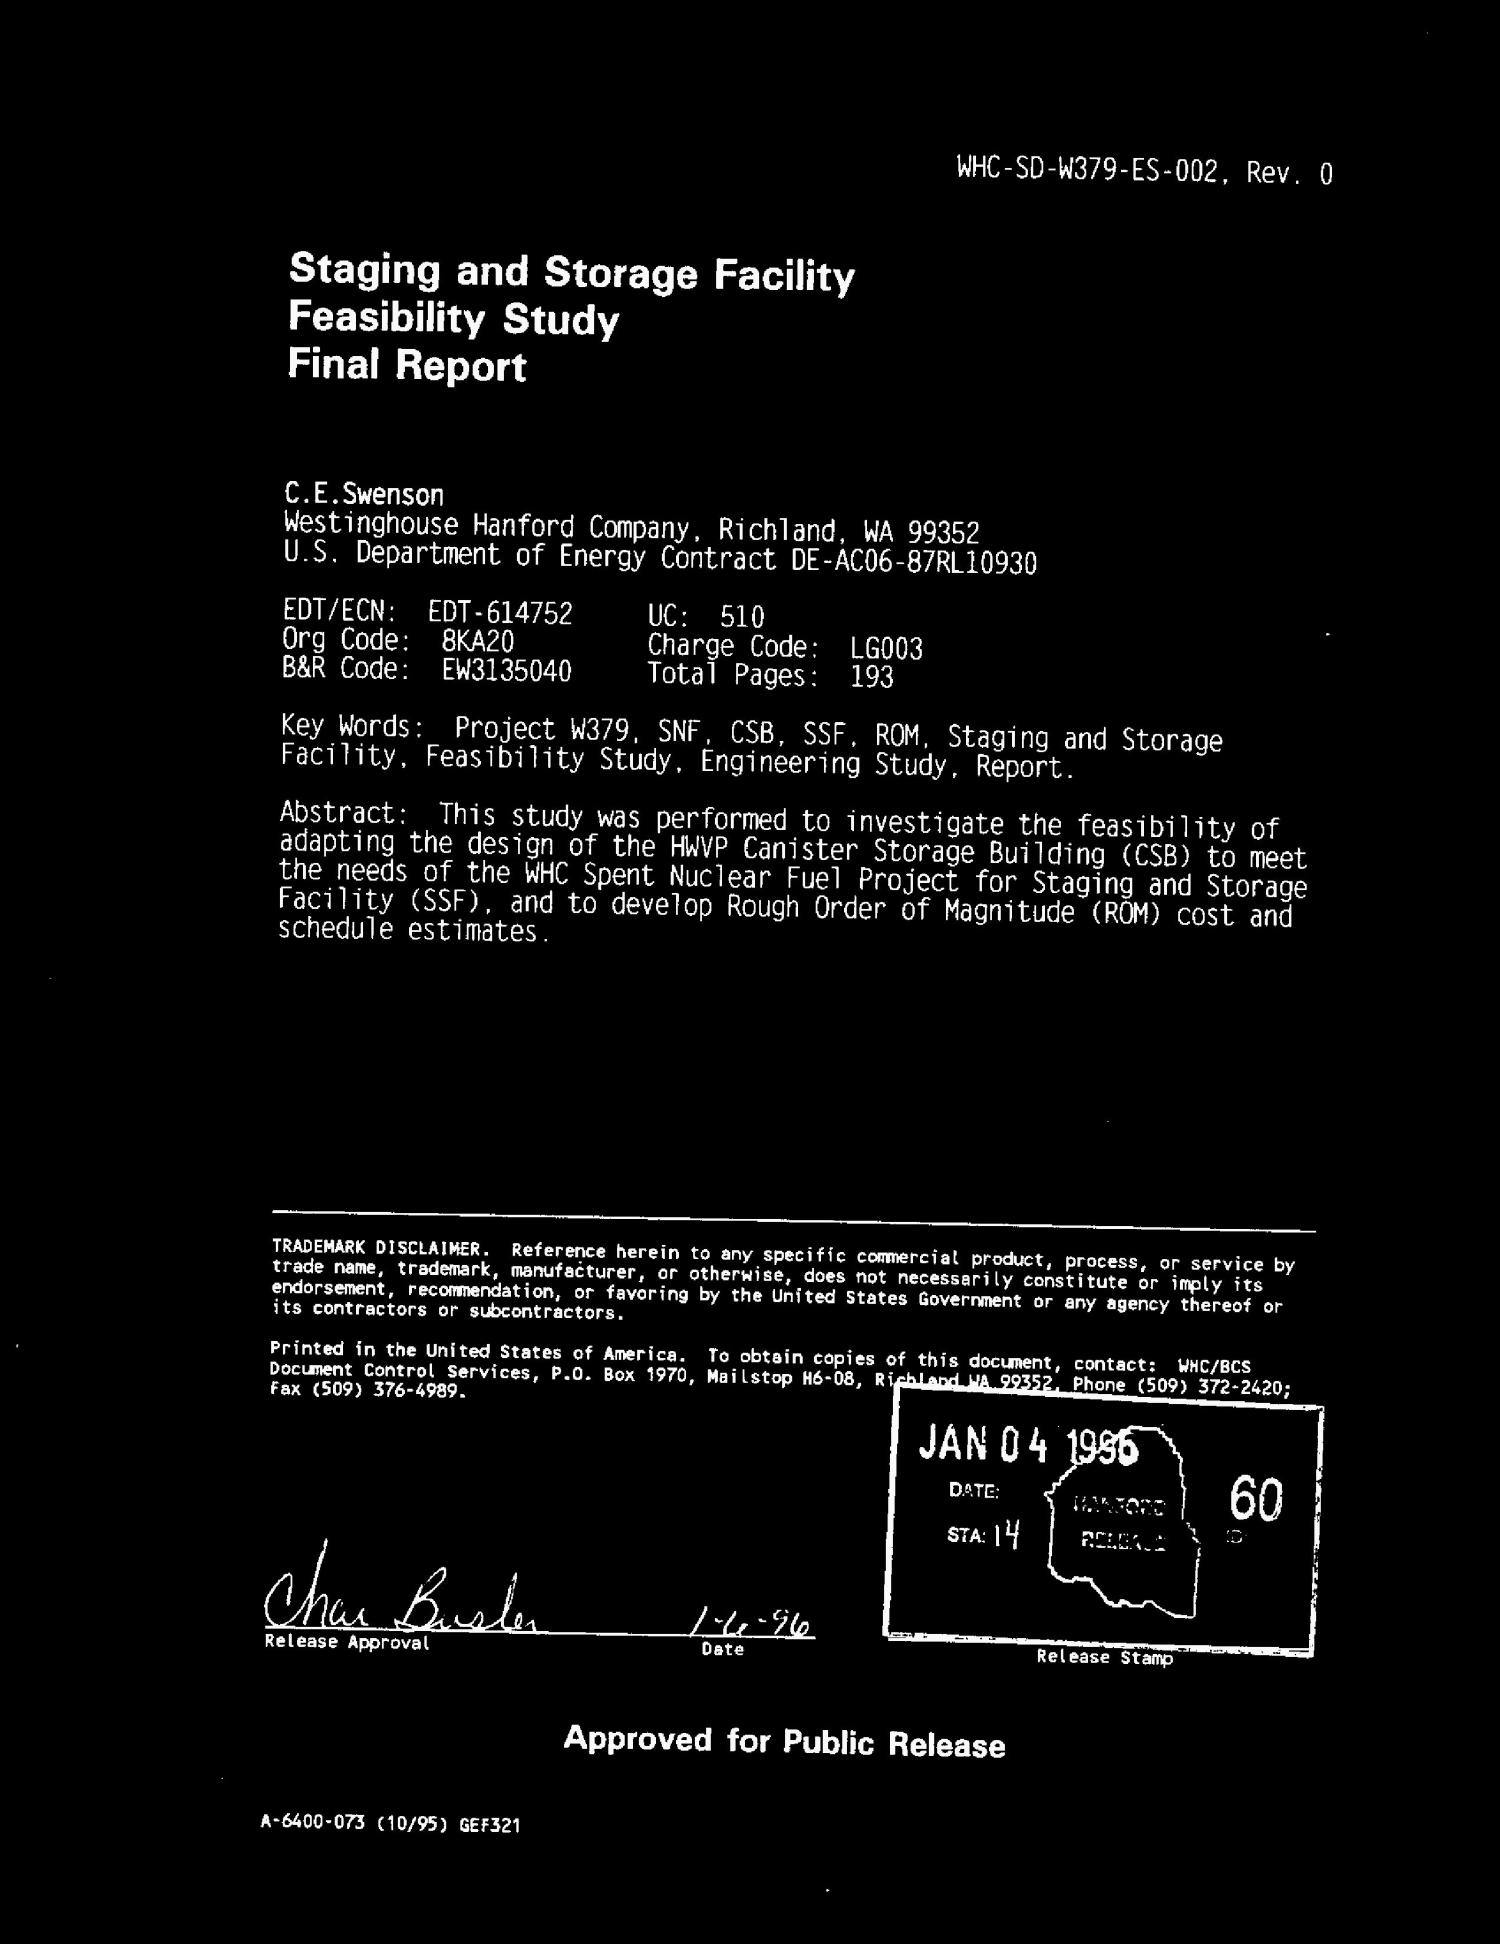 Staging and storage facility feasibility study. Final report                                                                                                      [Sequence #]: 3 of 194